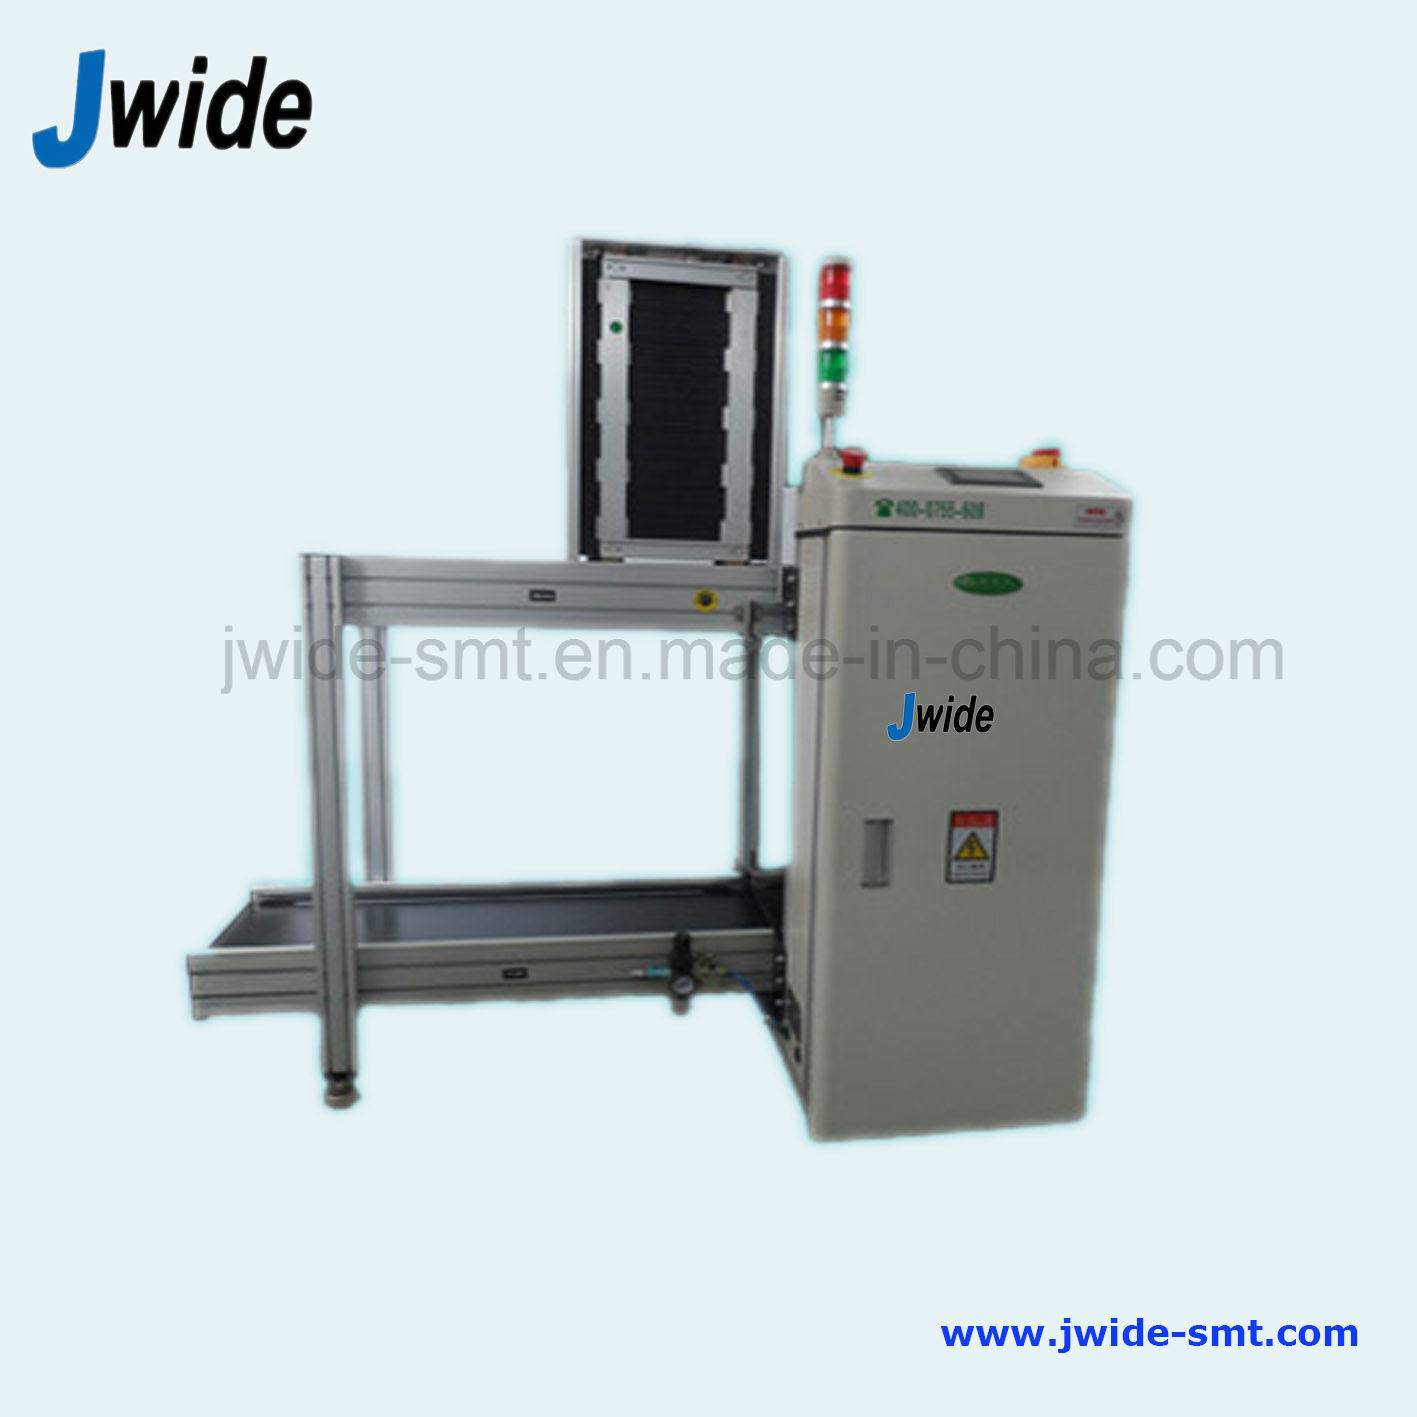 Automatic PCB magazine Loader with 3 Magzines